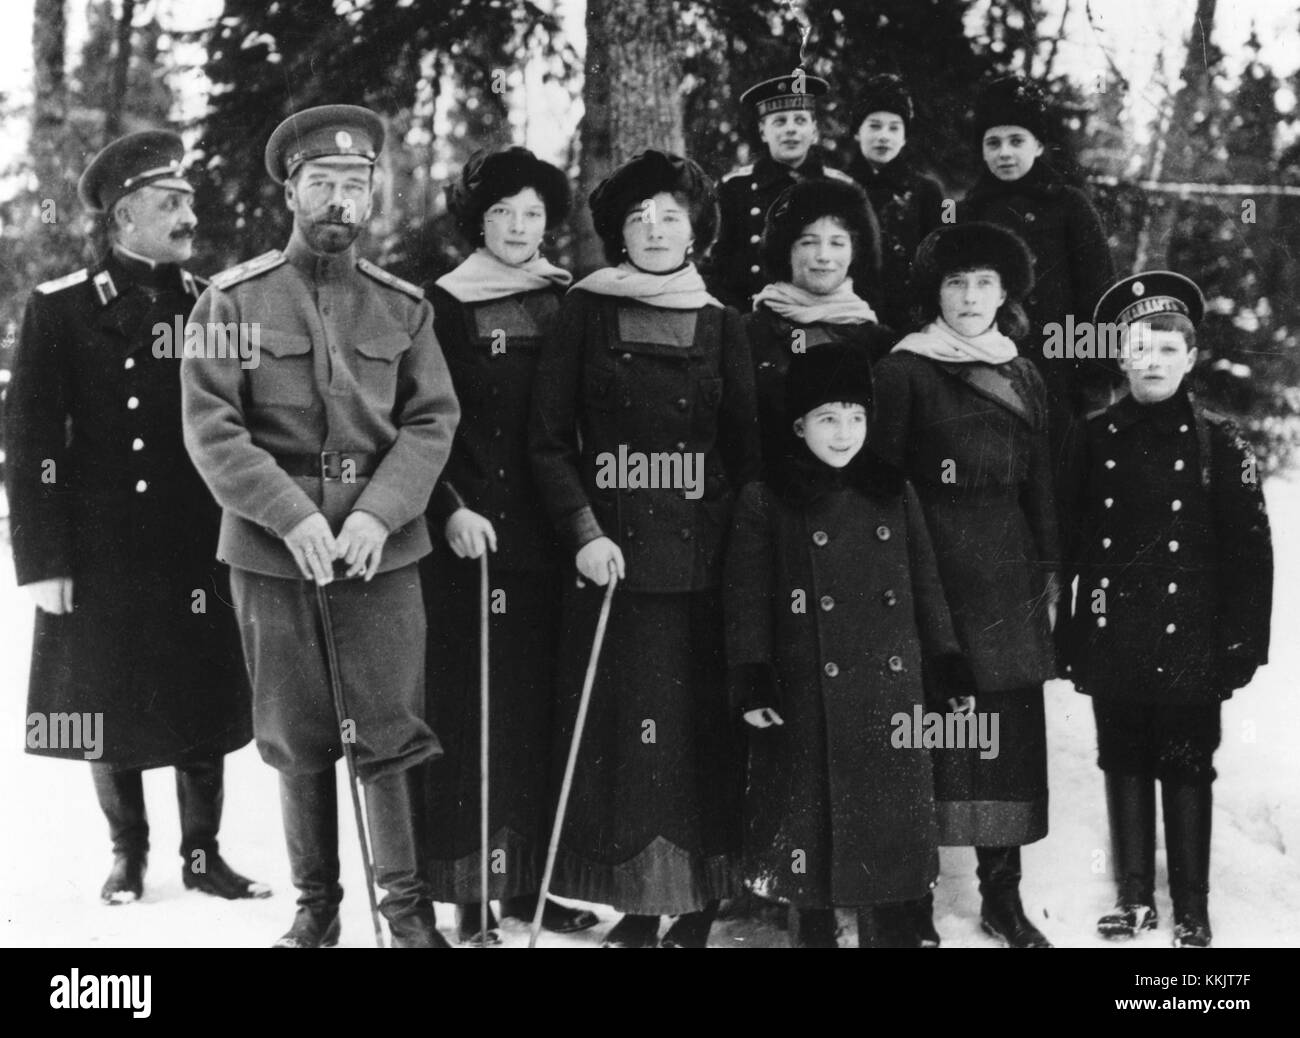 Tsar Nicholas II of Russia with members of his family in the private grounds of Tsarskoe Selo, the summer palace. - Stock Image